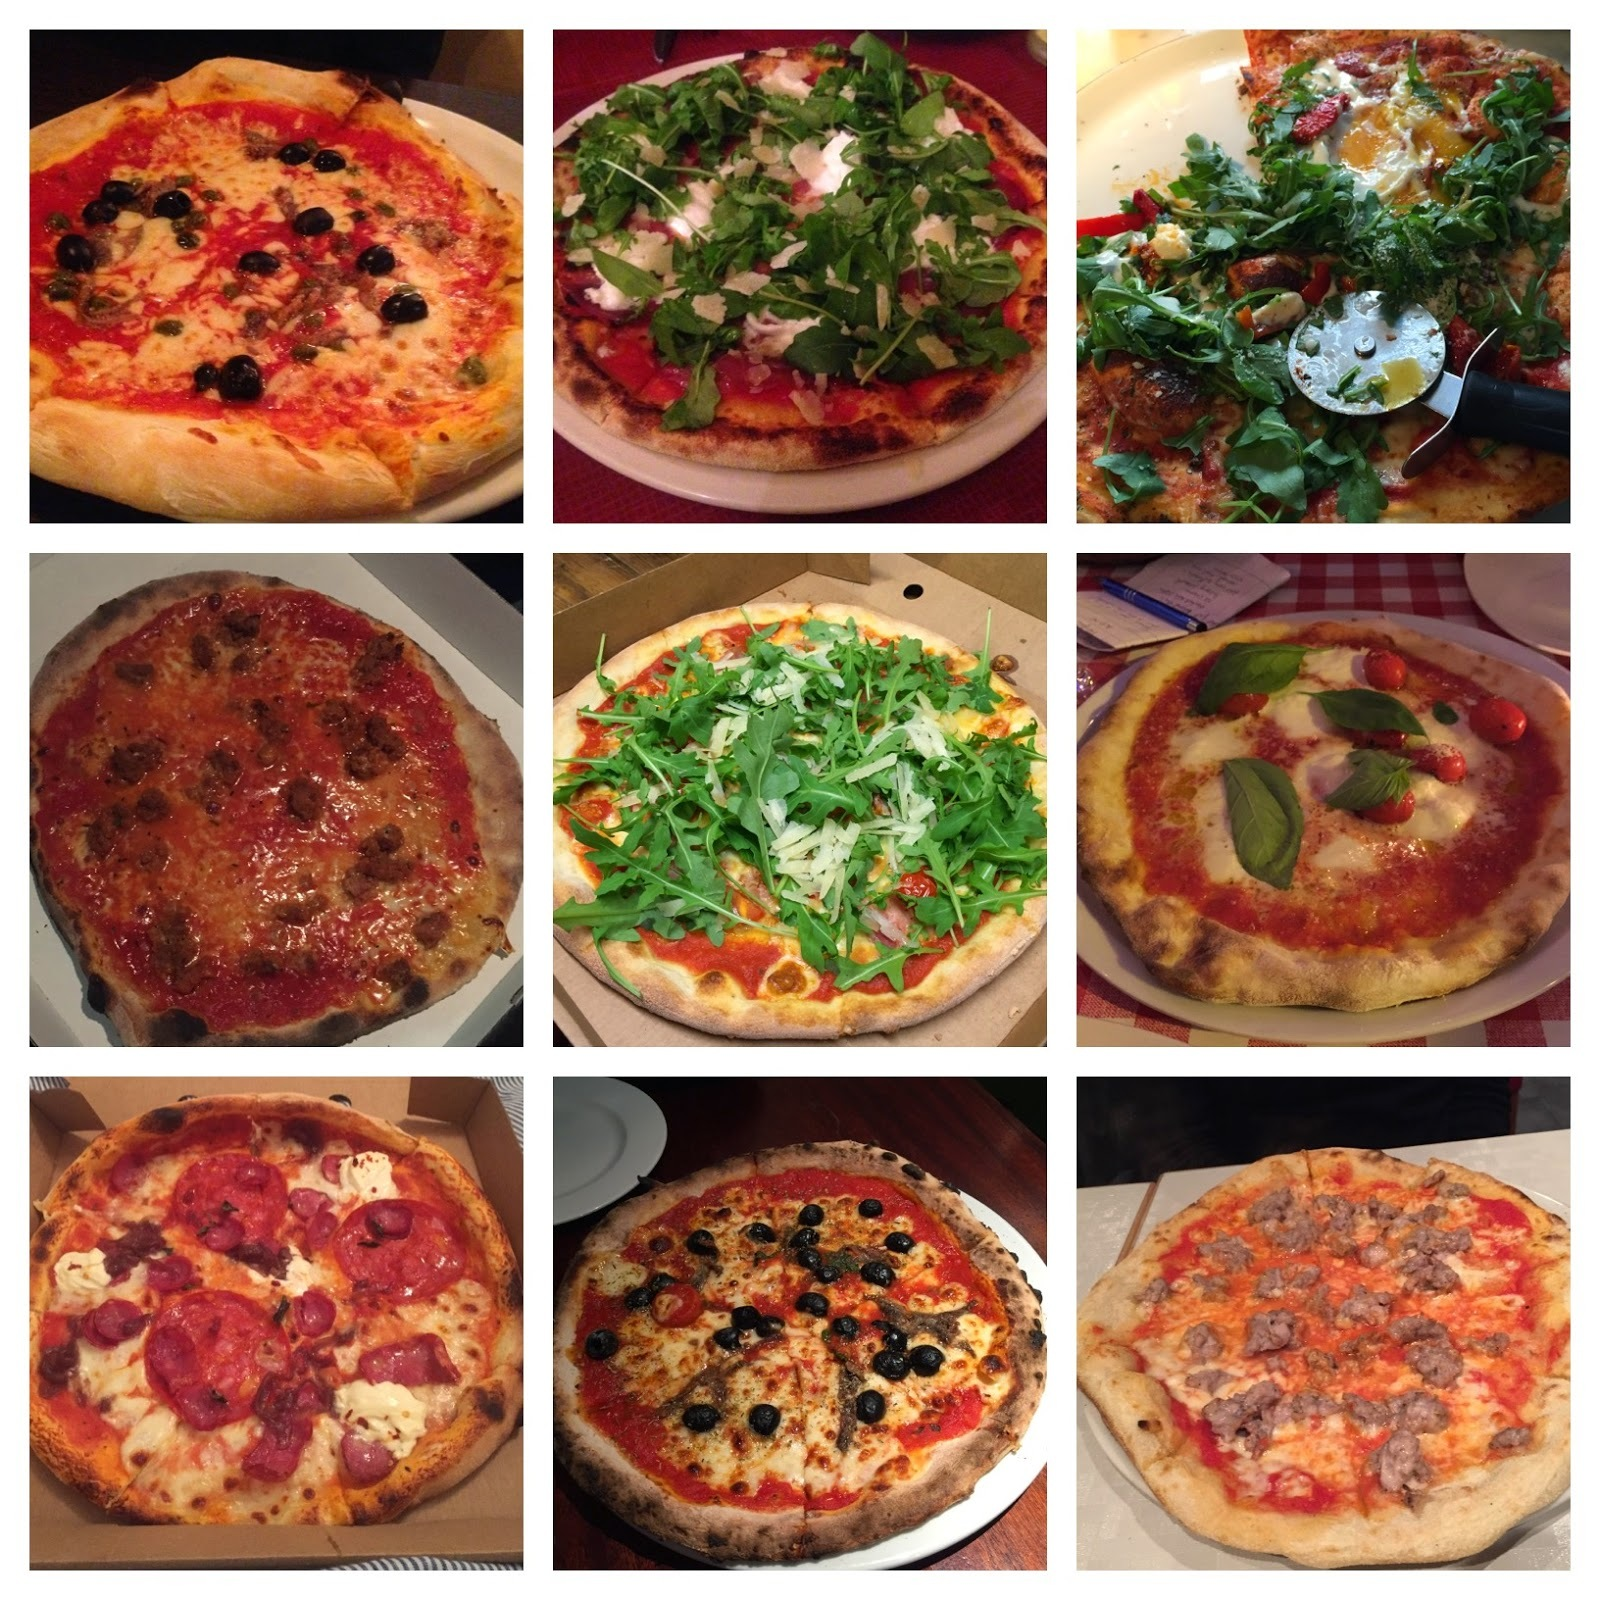 Review: The best and worst pizzas in Brighton